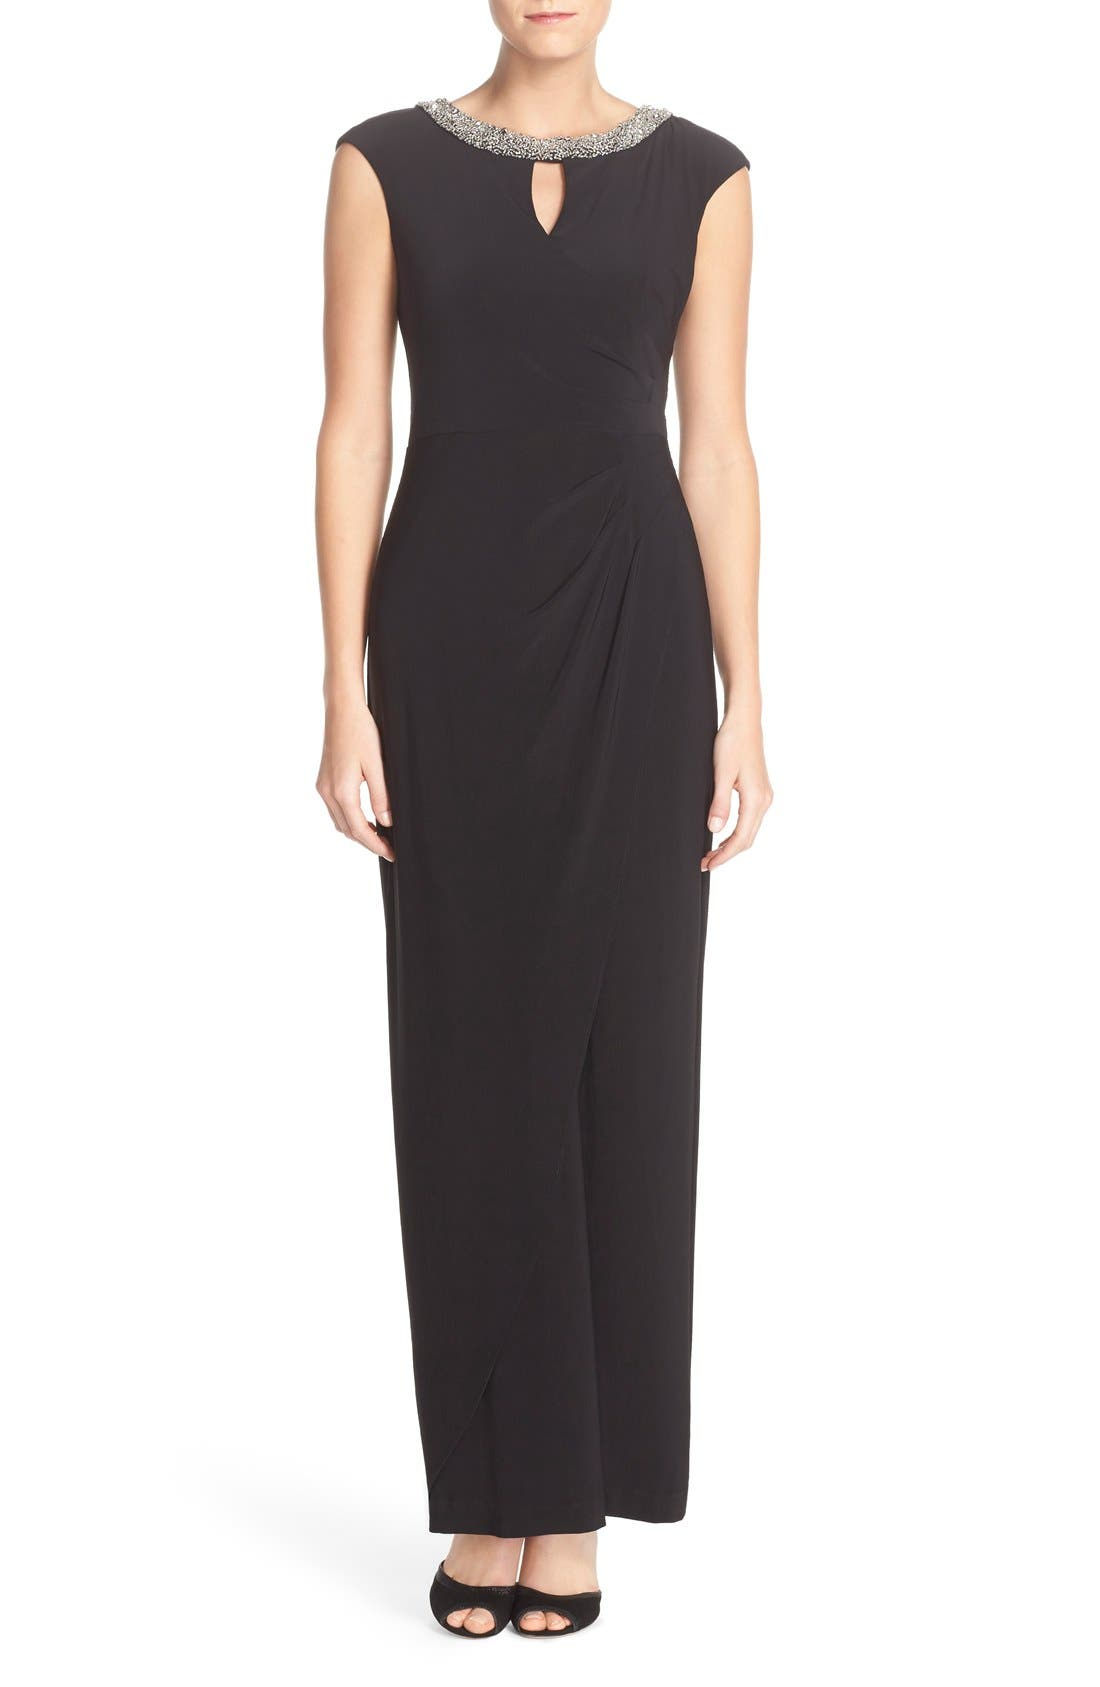 Alternate Image 1 Selected - Alex Evenings Beaded Neck Ruched Jersey Gown (Regular & Petite)